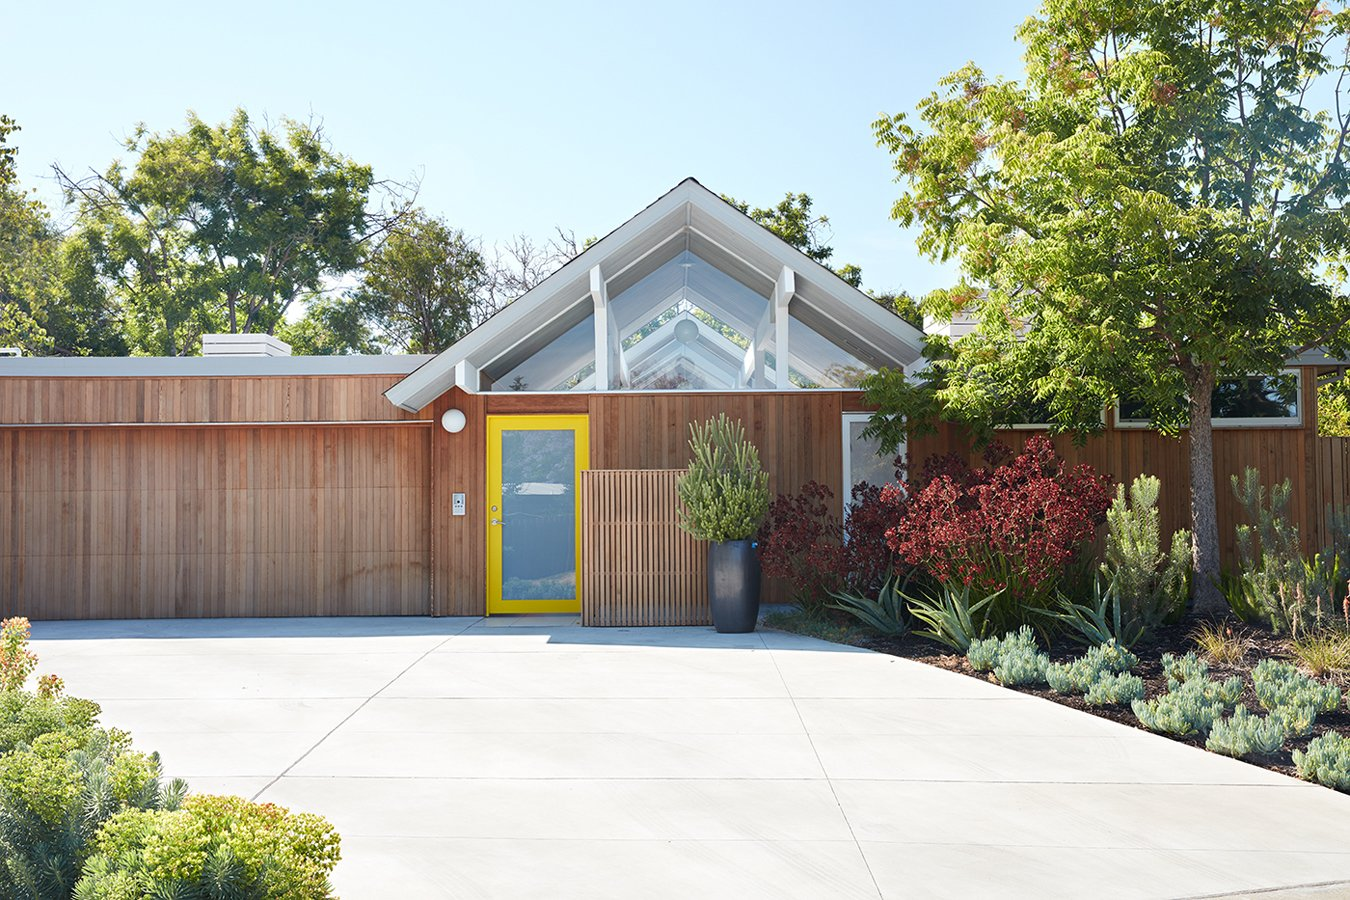 Photo 1 of 10 in Same Bones, New Materials—A Double Gable Eichler Gets a Dashing Update